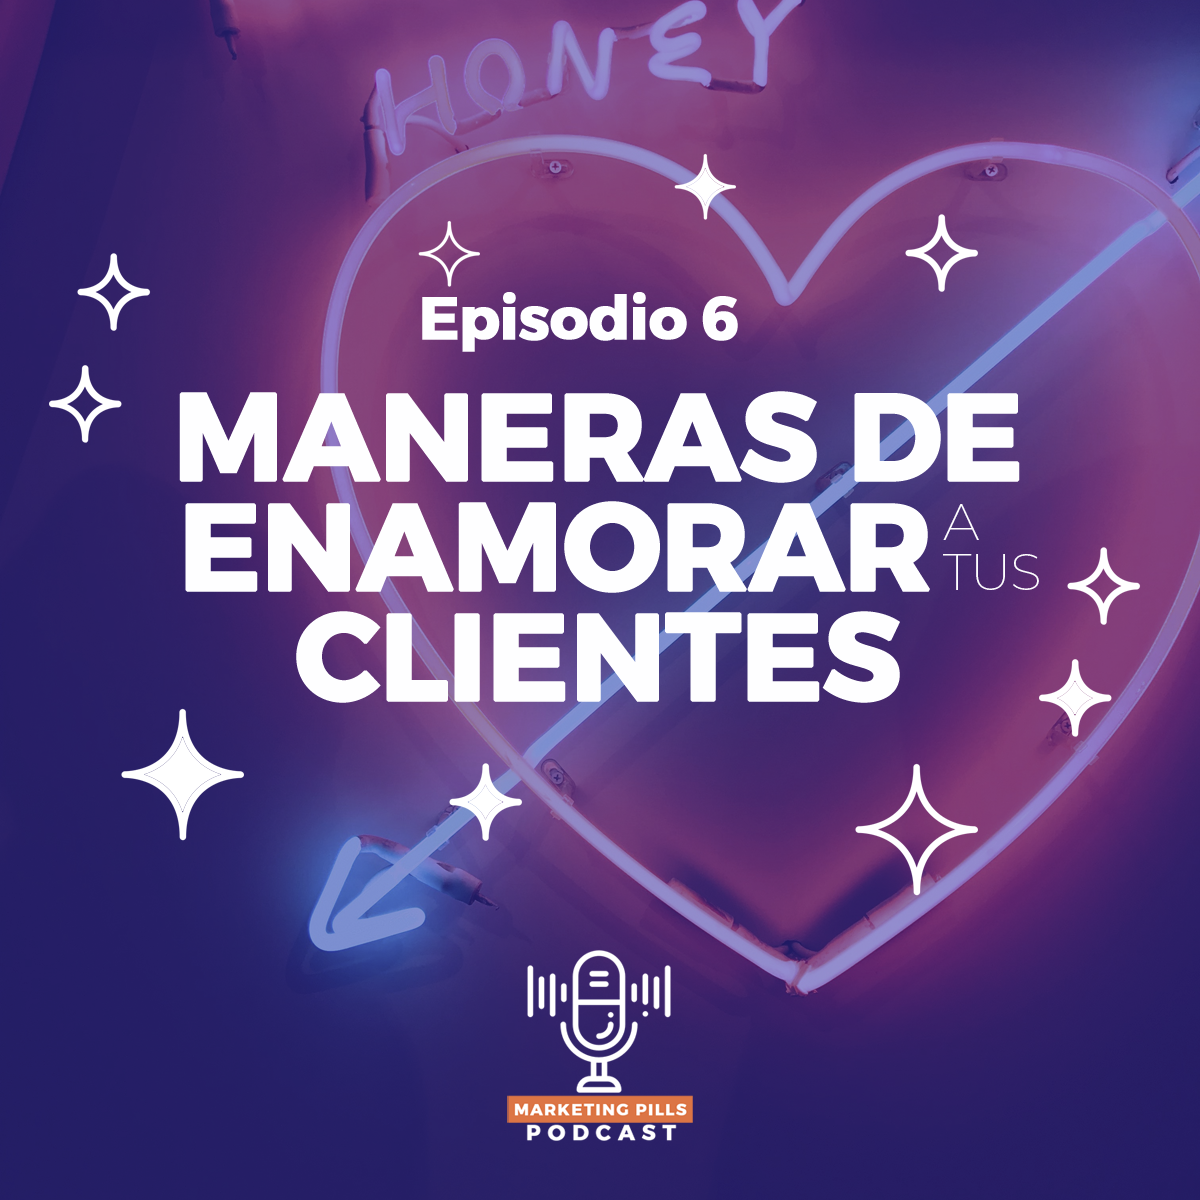 http://marianasalas.com/wp-content/uploads/2019/02/EPISODIO-6.png